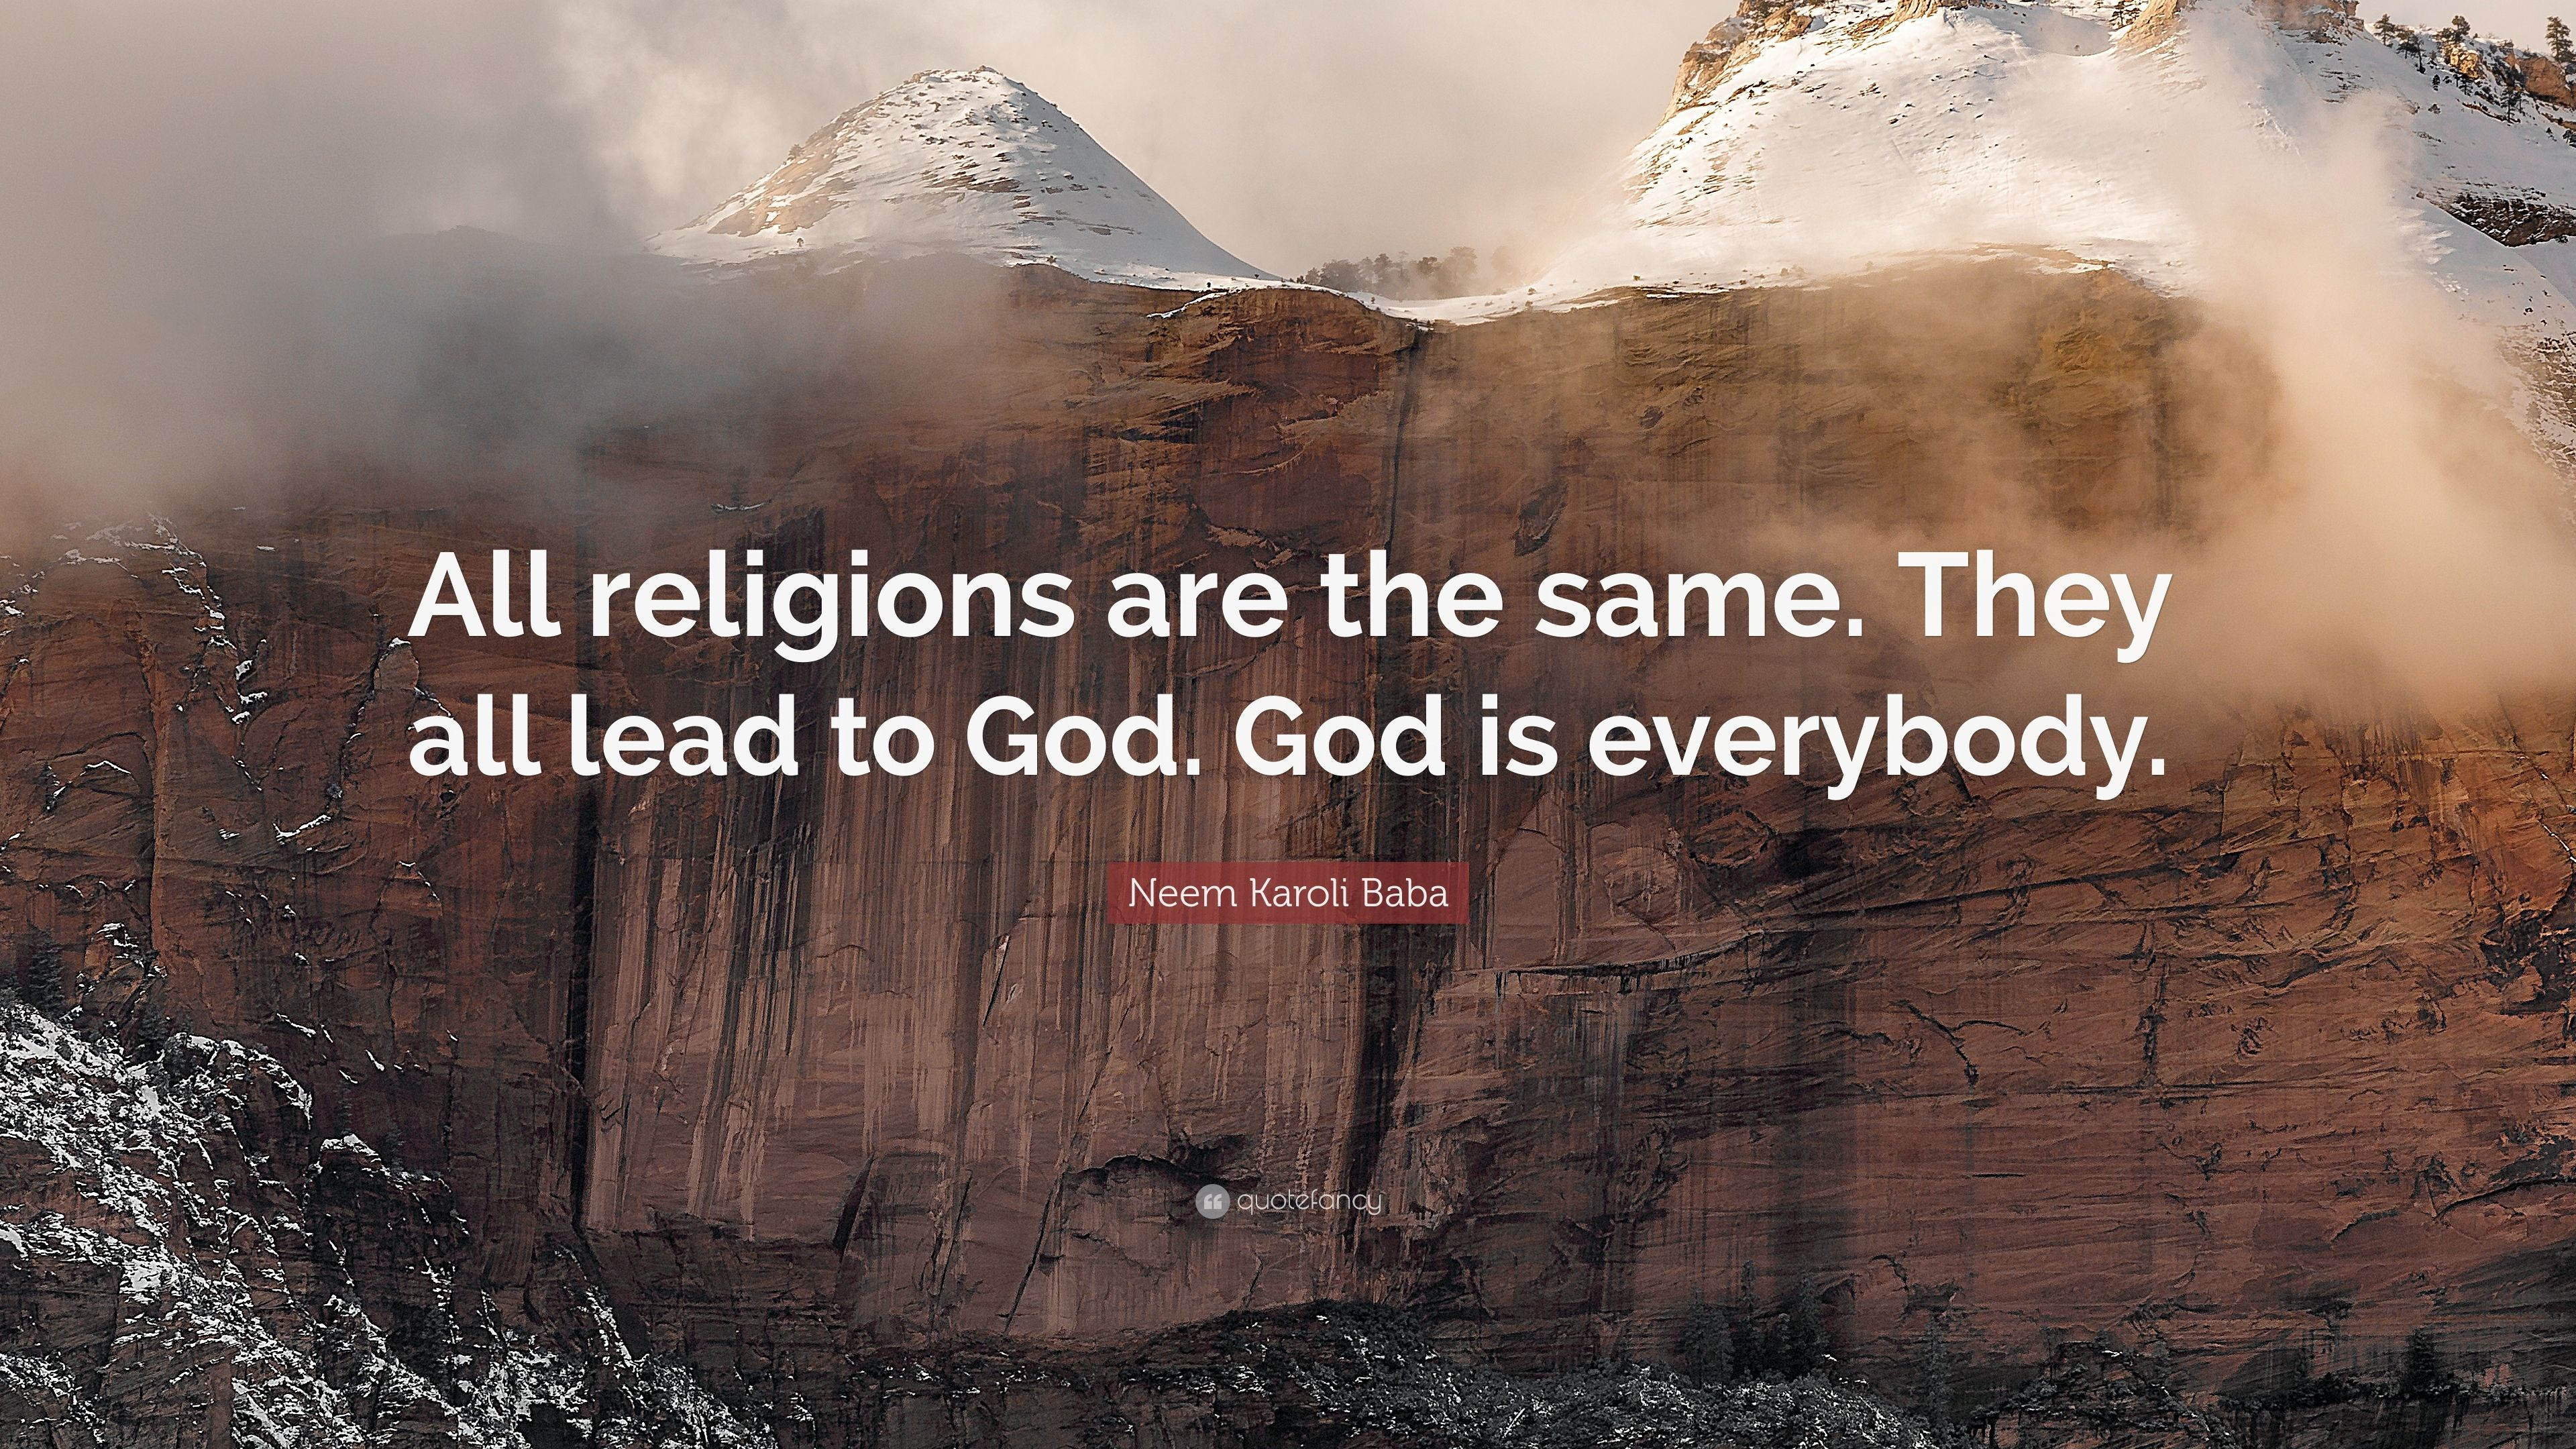 But dont all religions lead to god pdf creator